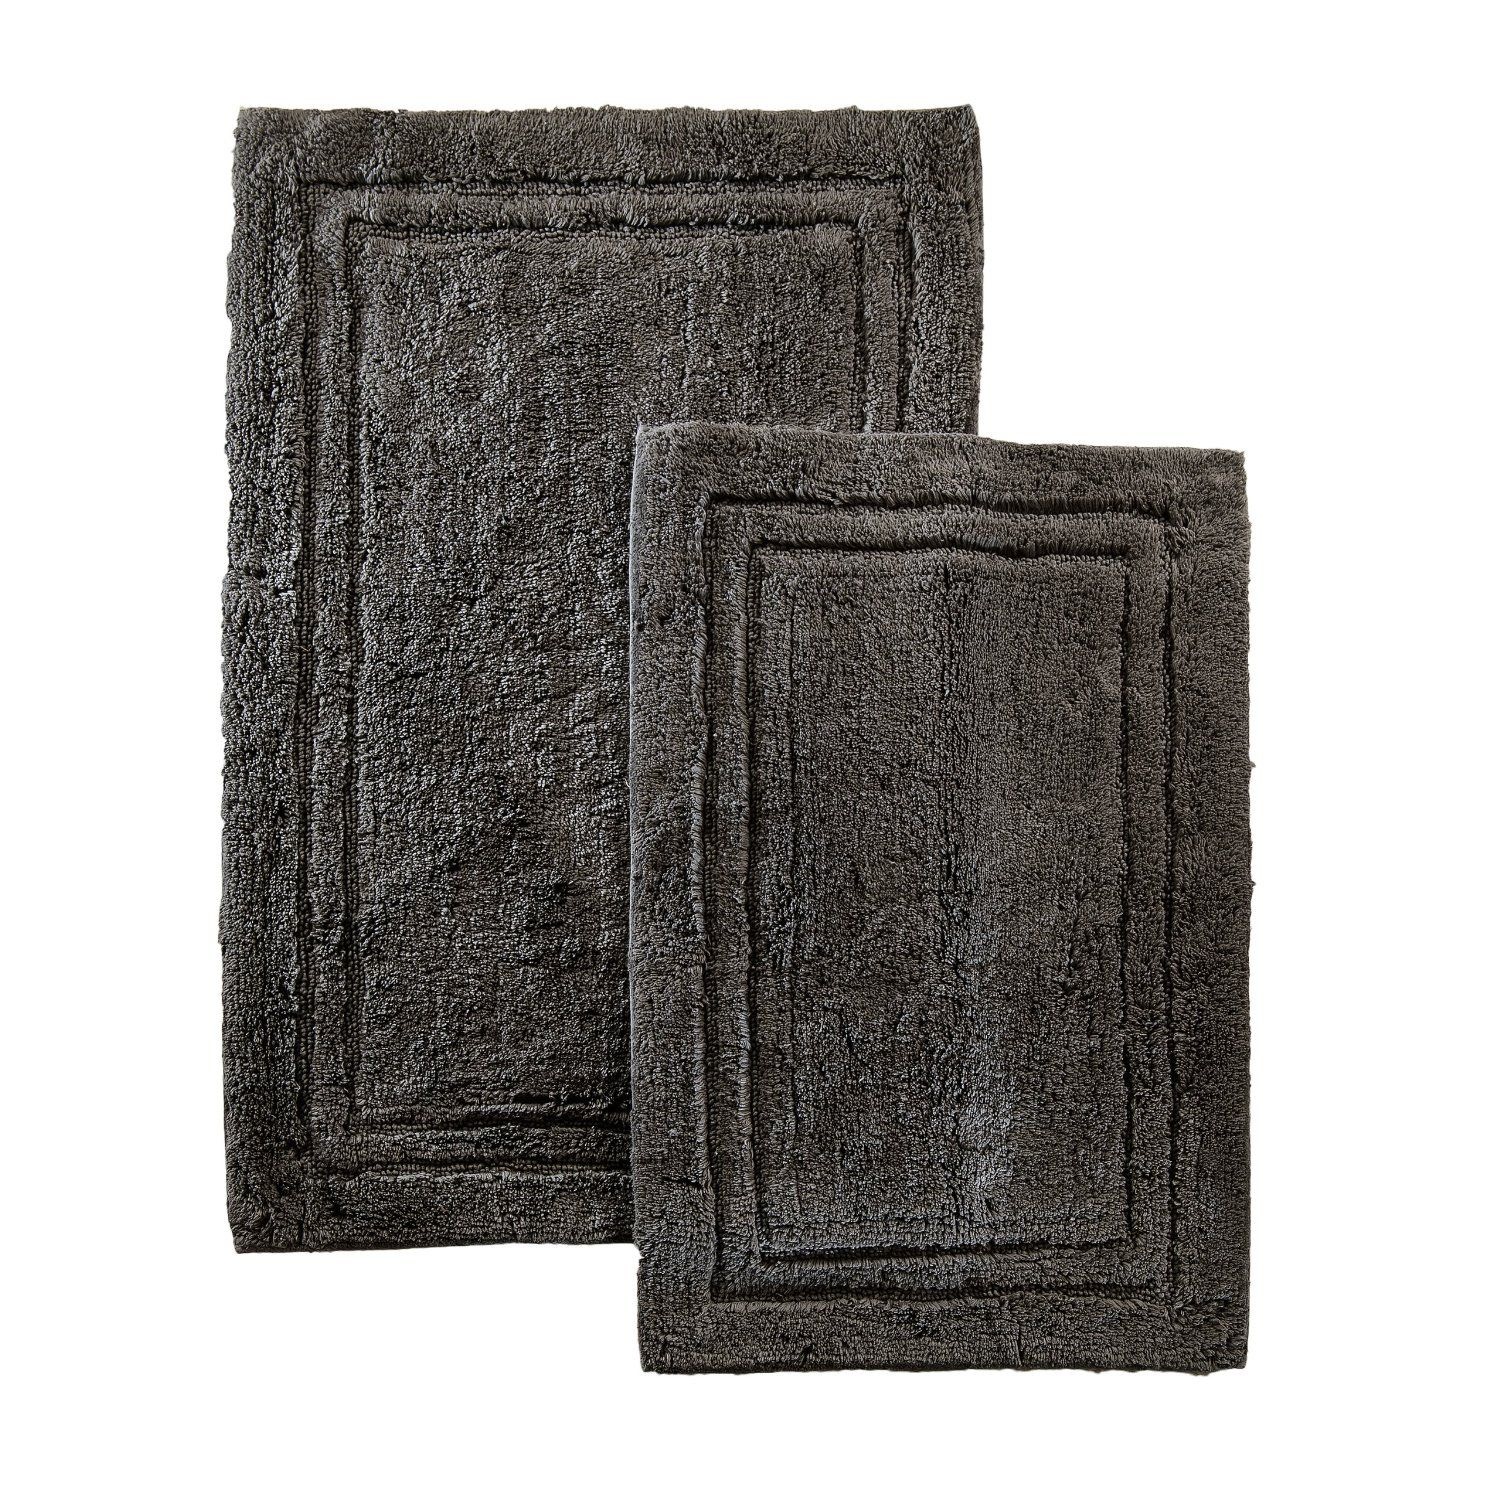 rug blue colors sets wall mats gray accent subway lighting shabby dark and linkbaitcoaching light designs bath tile red rugs chic brown bathroom toliet